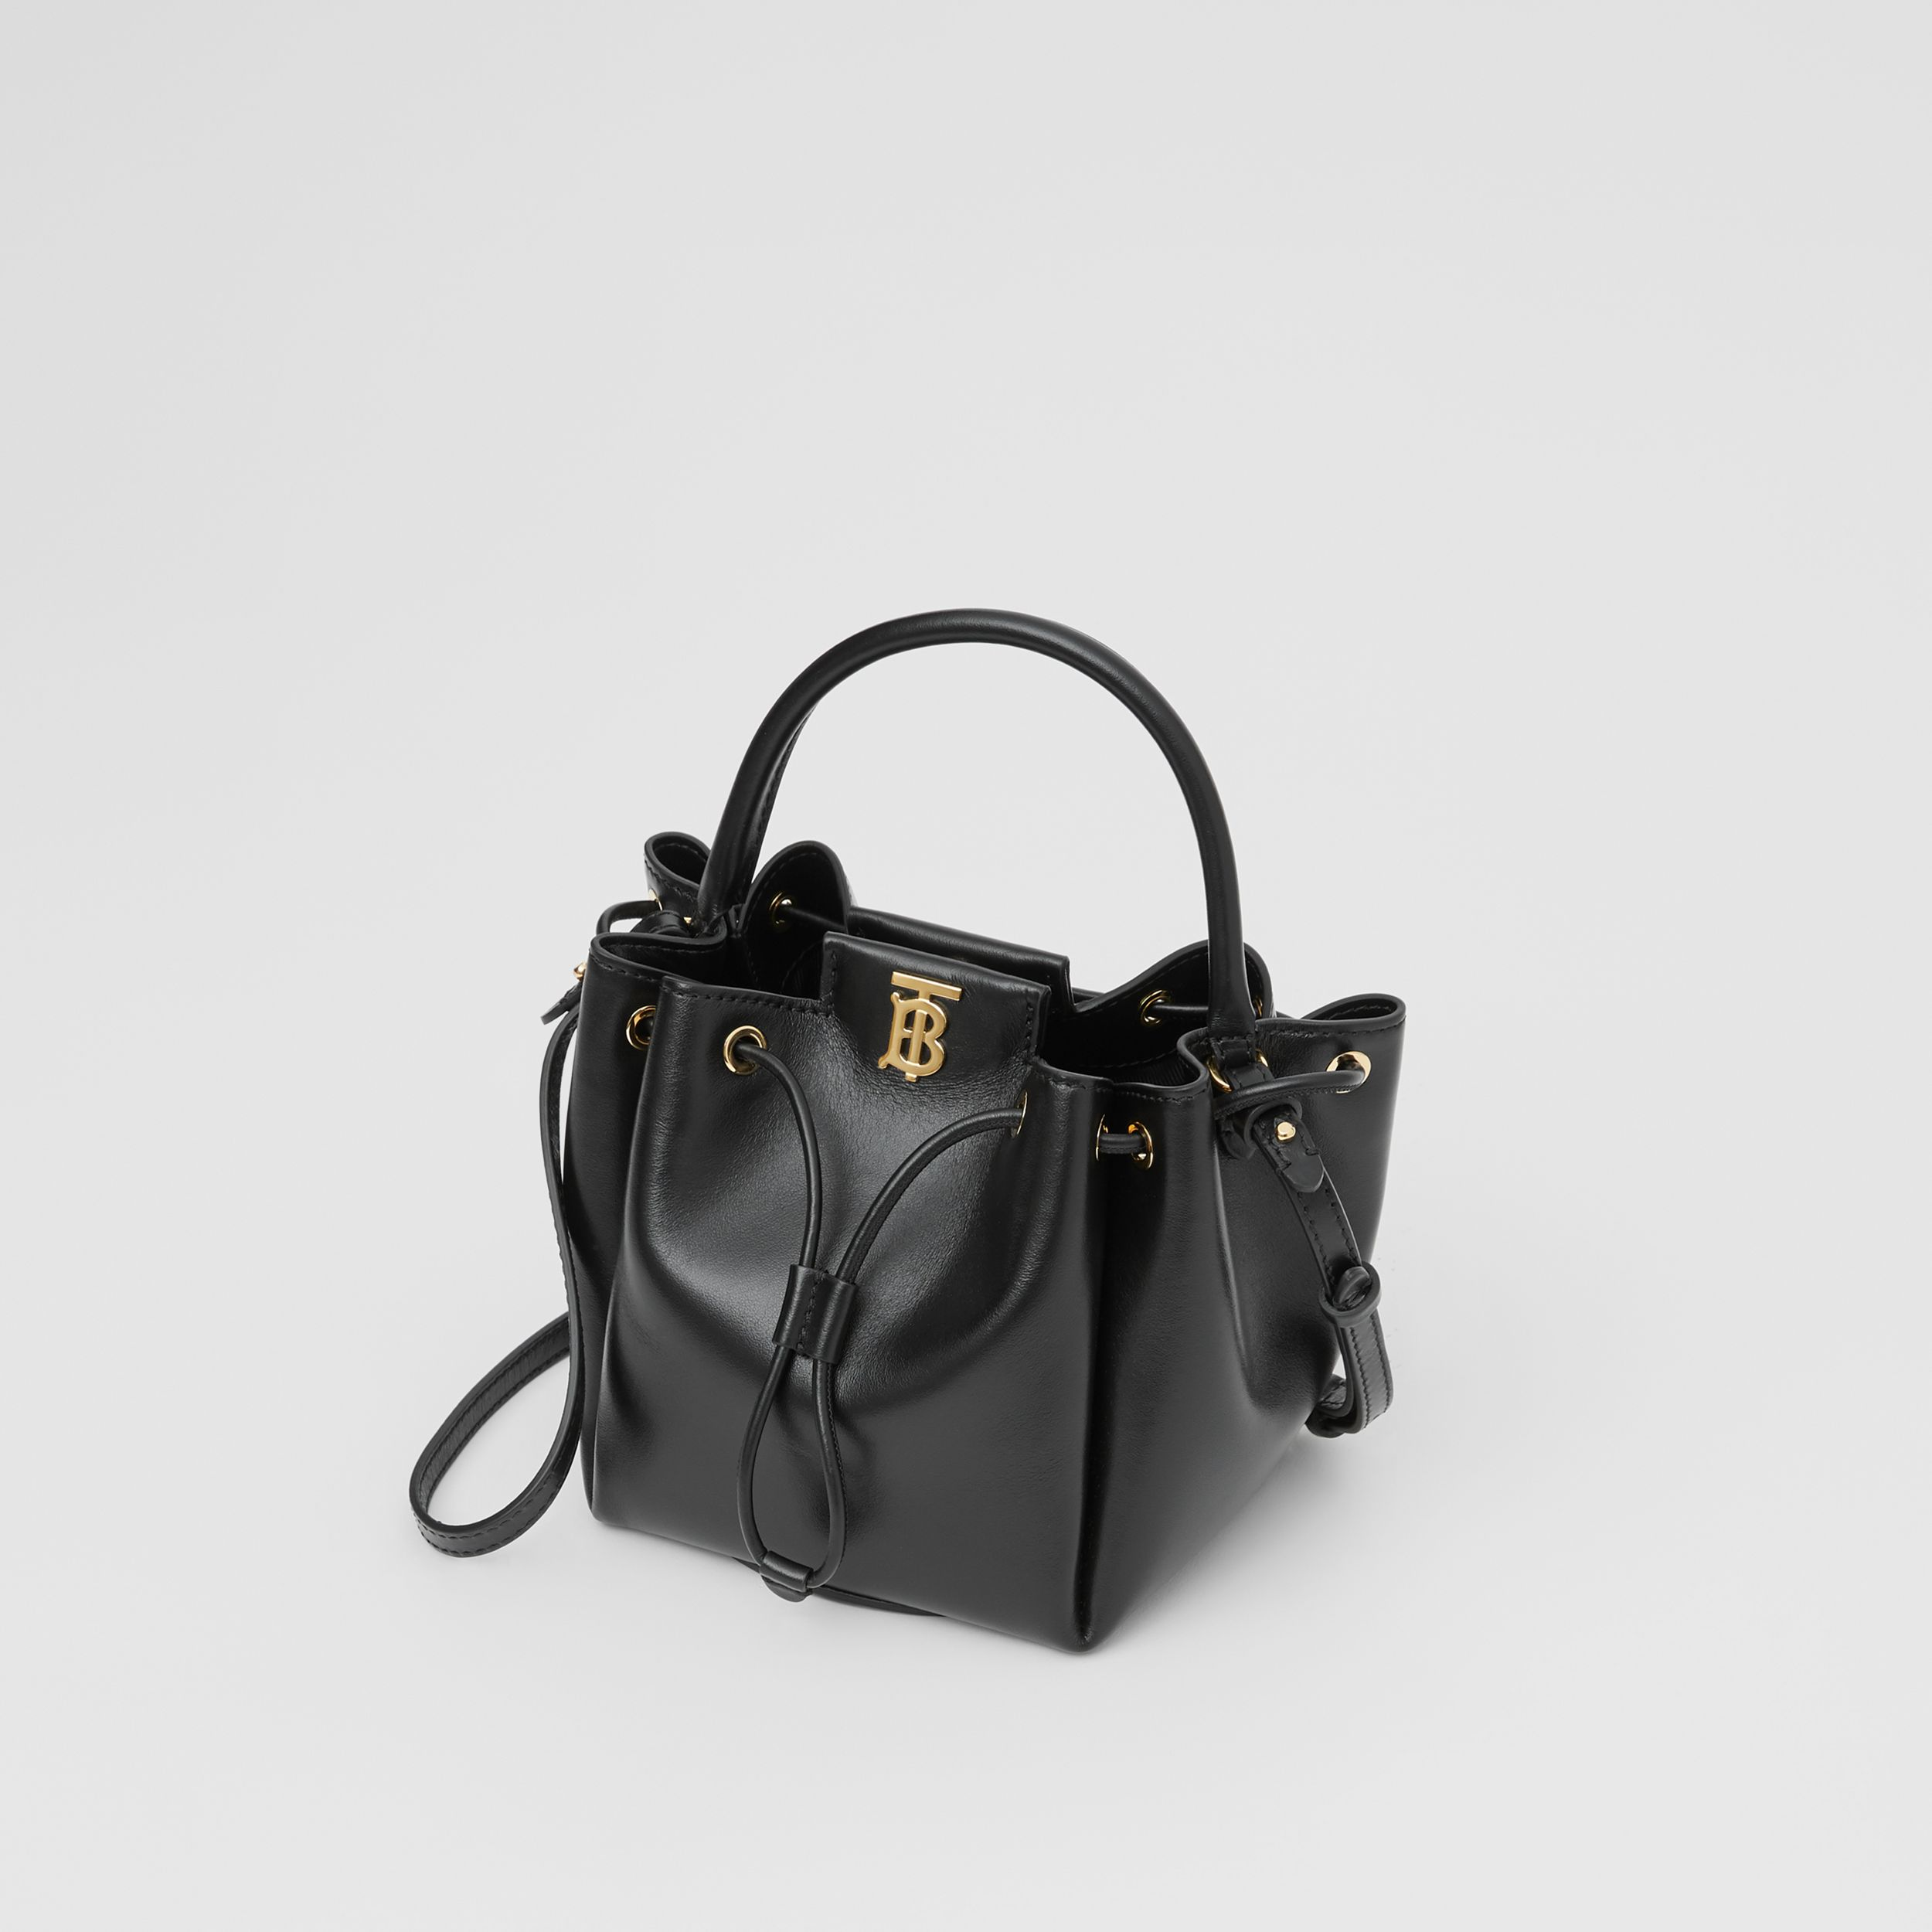 Monogram Motif Leather Bucket Bag in Black - Women | Burberry United States - 4